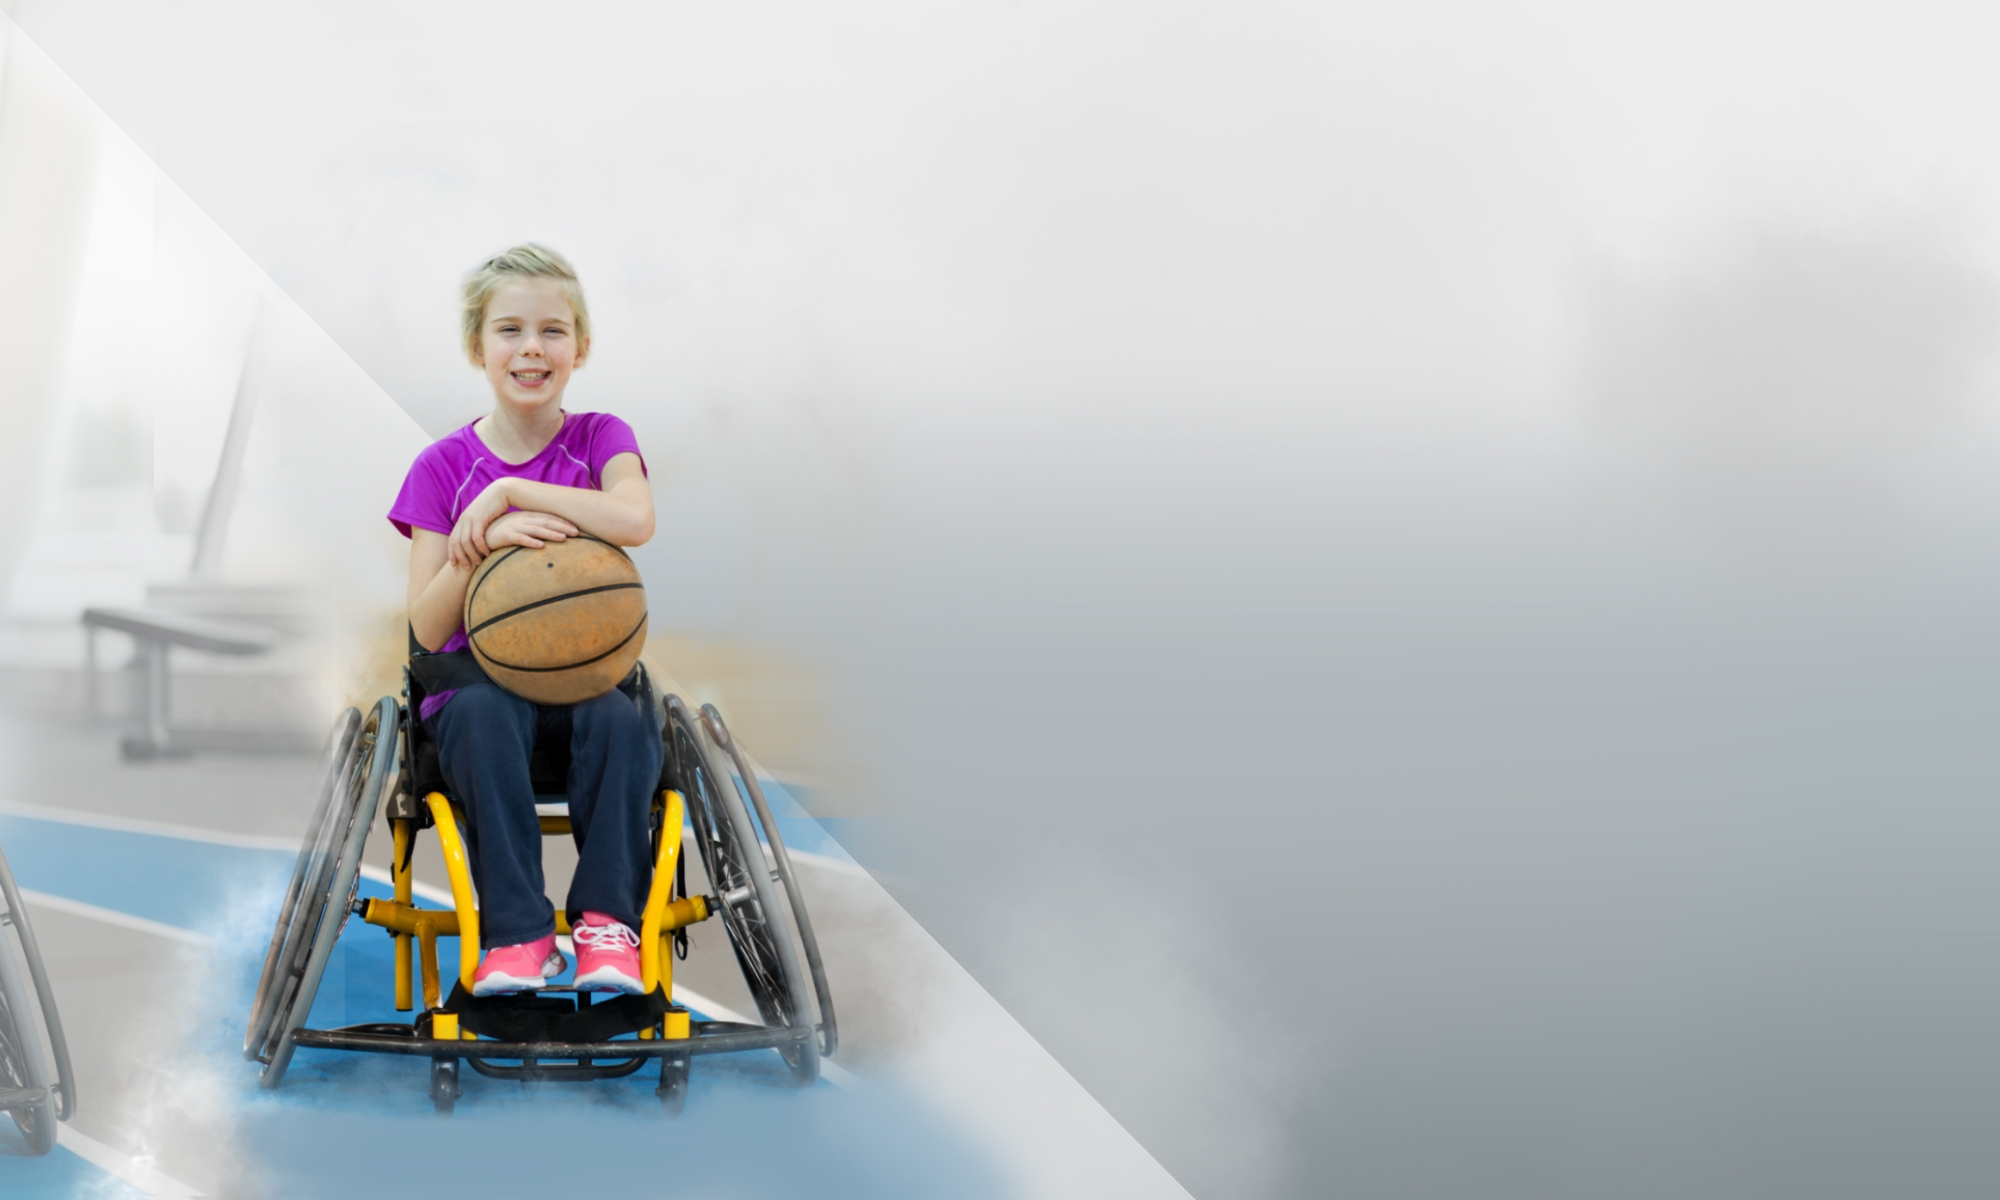 Girl in a wheelchair holding a basketball